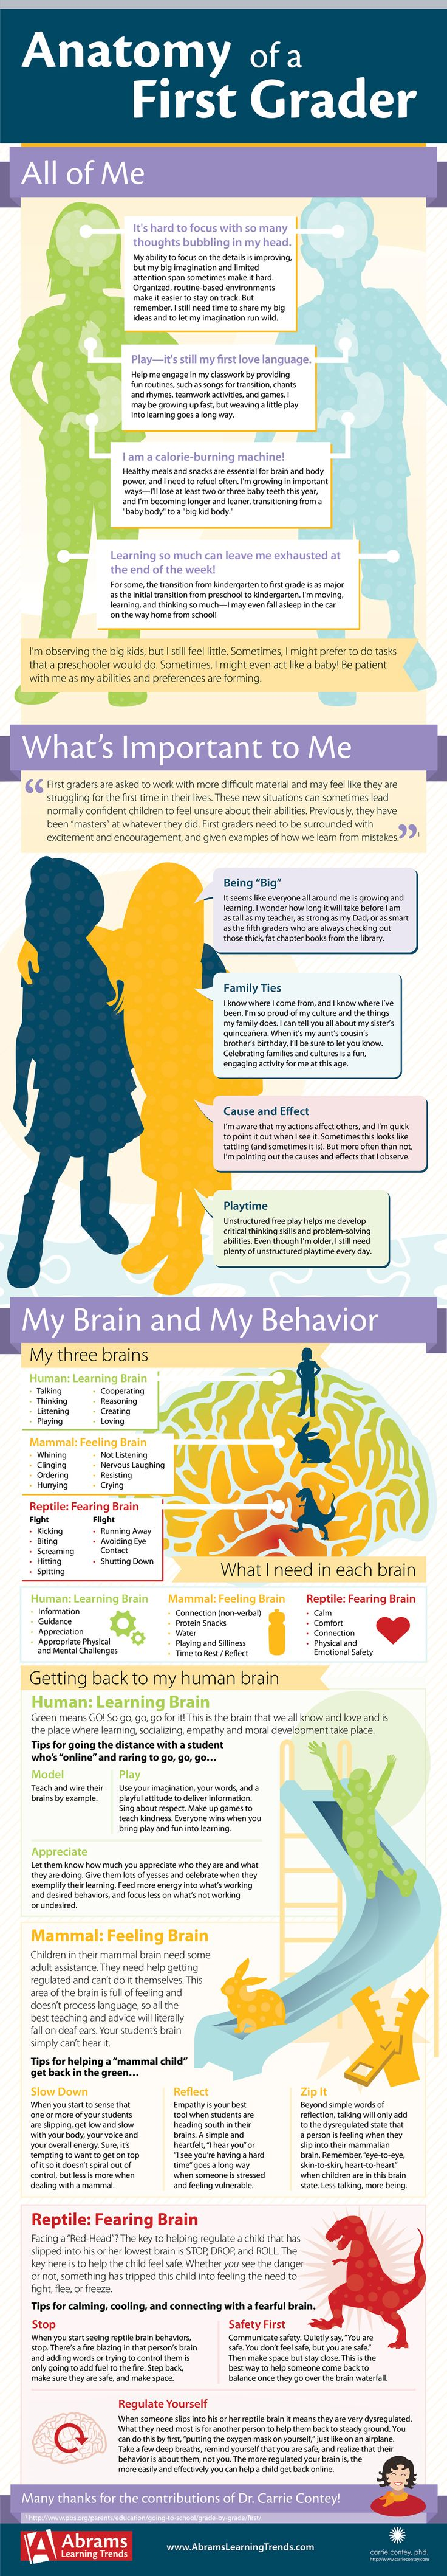 "#Infographic with physical, social, cognitive, and emotional norms for #firstgrade. Awesome info! Often caught between being little and wanting to feel ""big"", first grade can be a challenging time. For many, it's the first time that learning becomes somewhat difficult. Children who expressed confidence in kindergarten may display new anxieties and self-confidence issues."